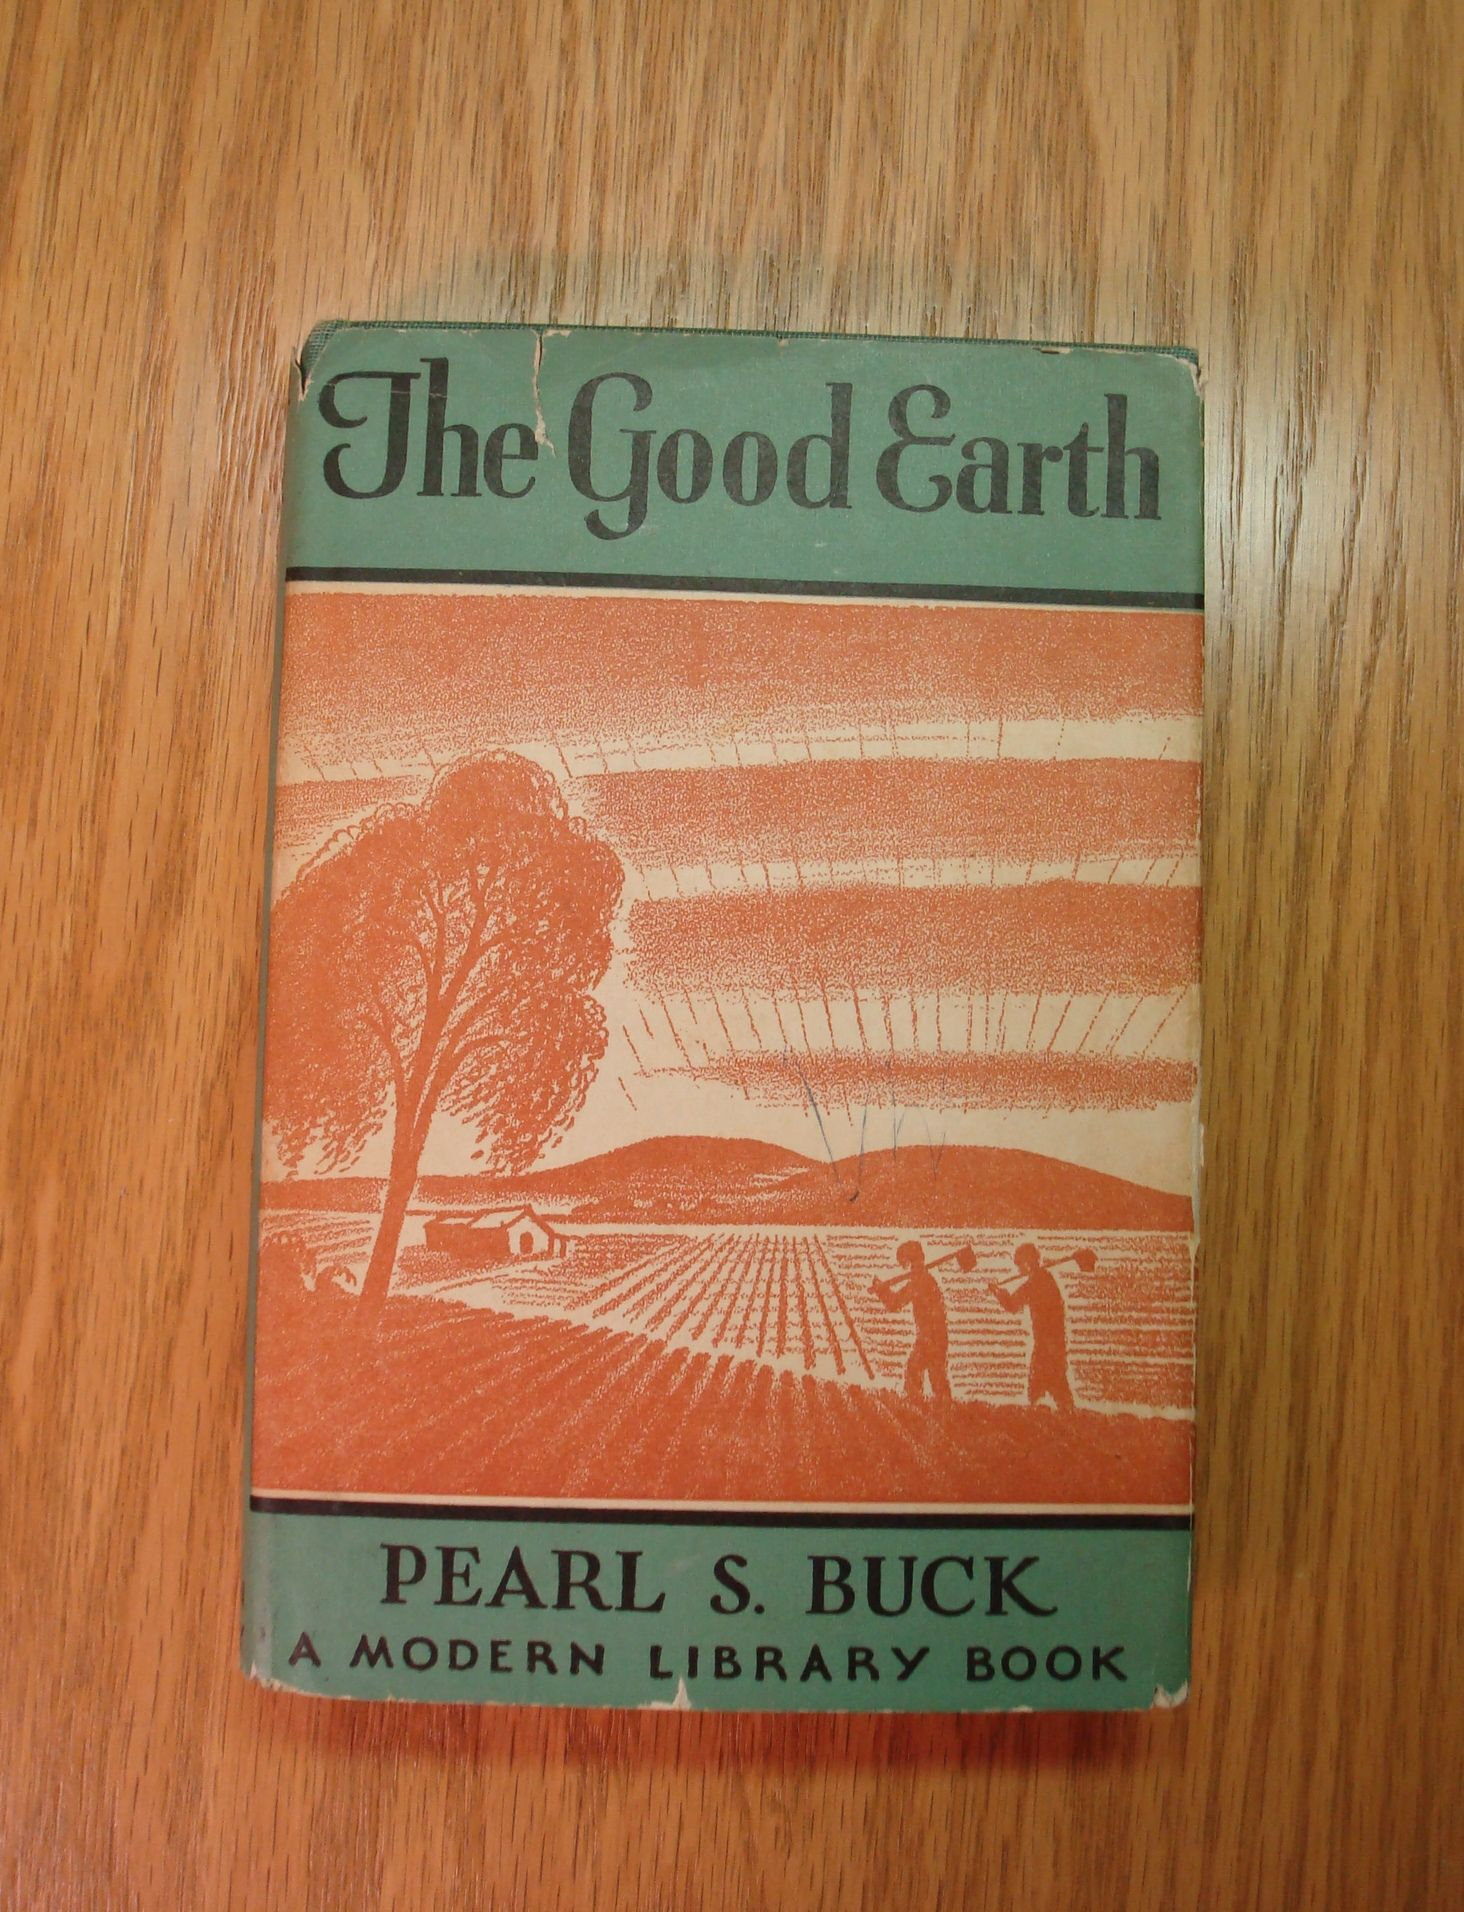 a book analysis of the good earth by pearl s buck As china's fortunes ebb and flow, wang lung's enduring passion for his land  gives him strength to survive suffering,  book - the good earth by pearl s buck .